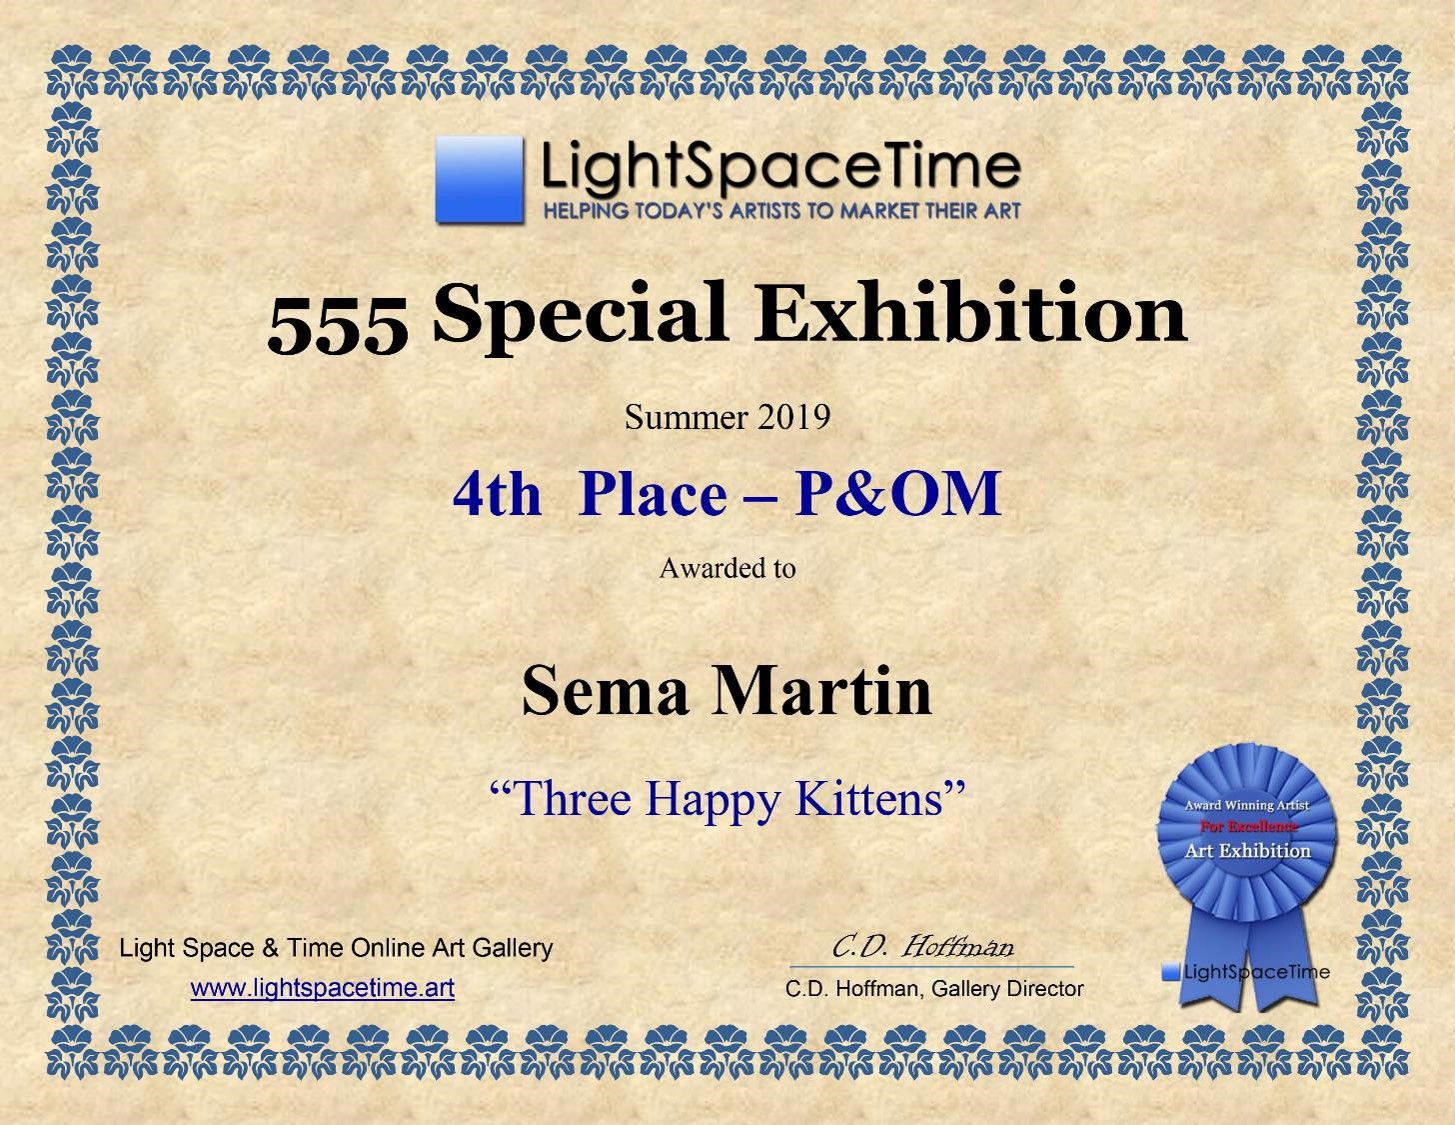 Copy of Light Space Time - 555 Special Exhibition summer 2019 4th place Artist Sema Martin 'Three Happy Kittens'